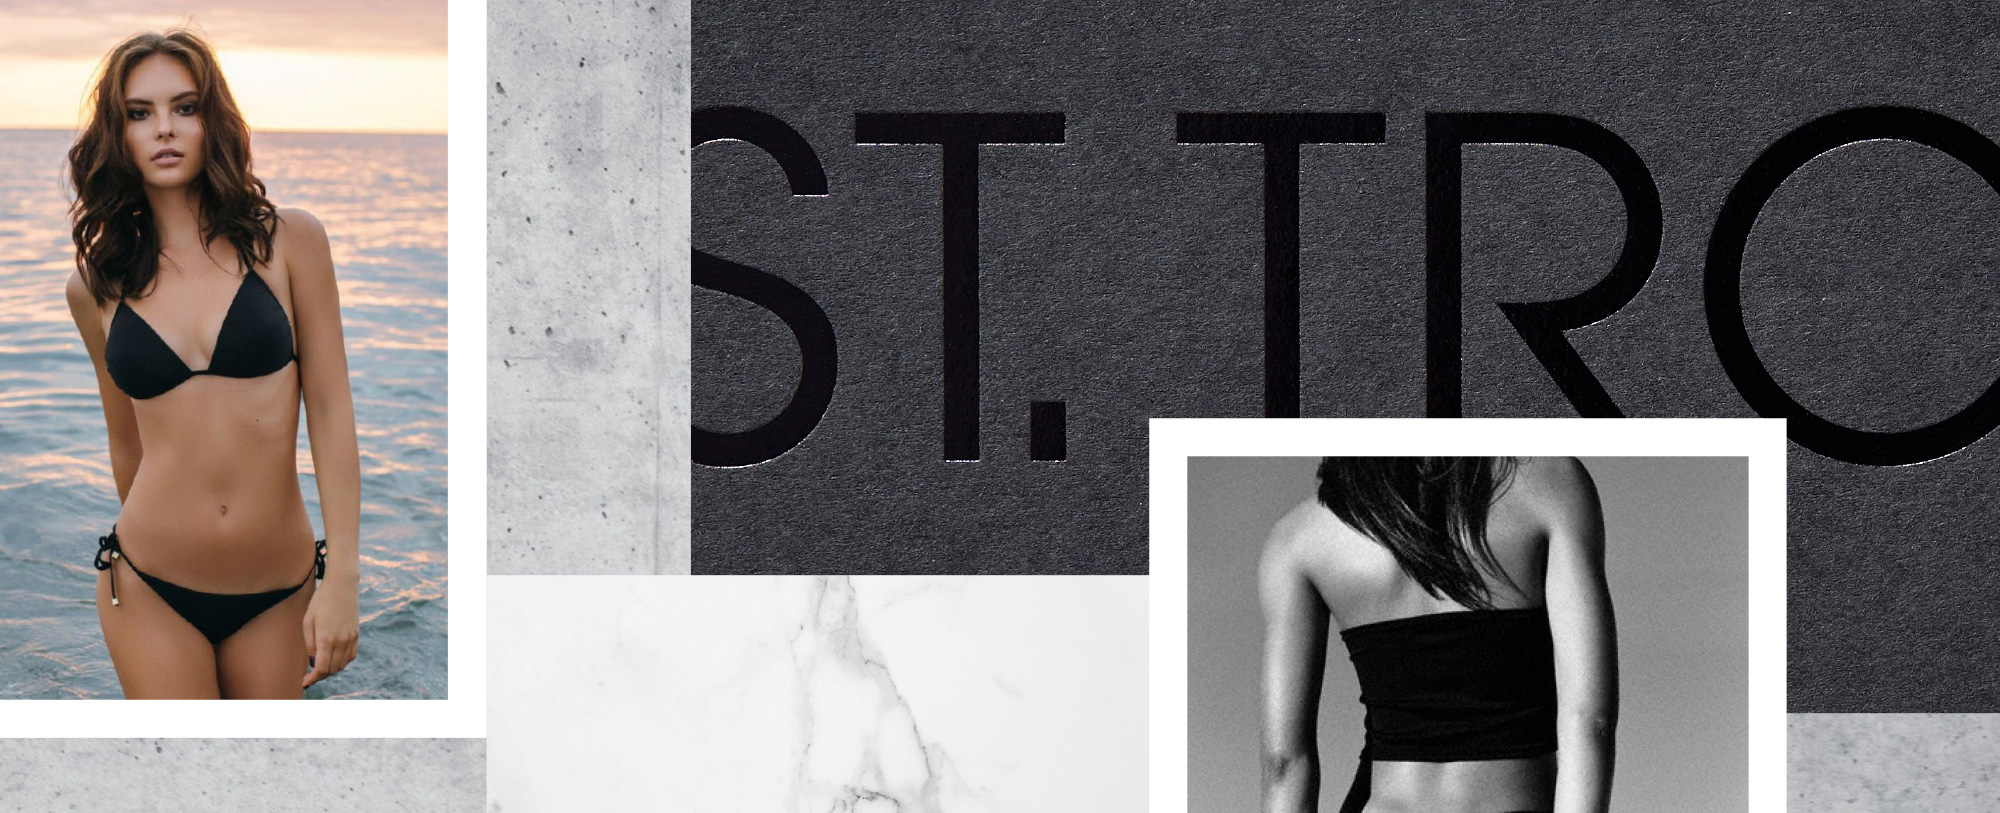 St-Tropez-Website-Banner